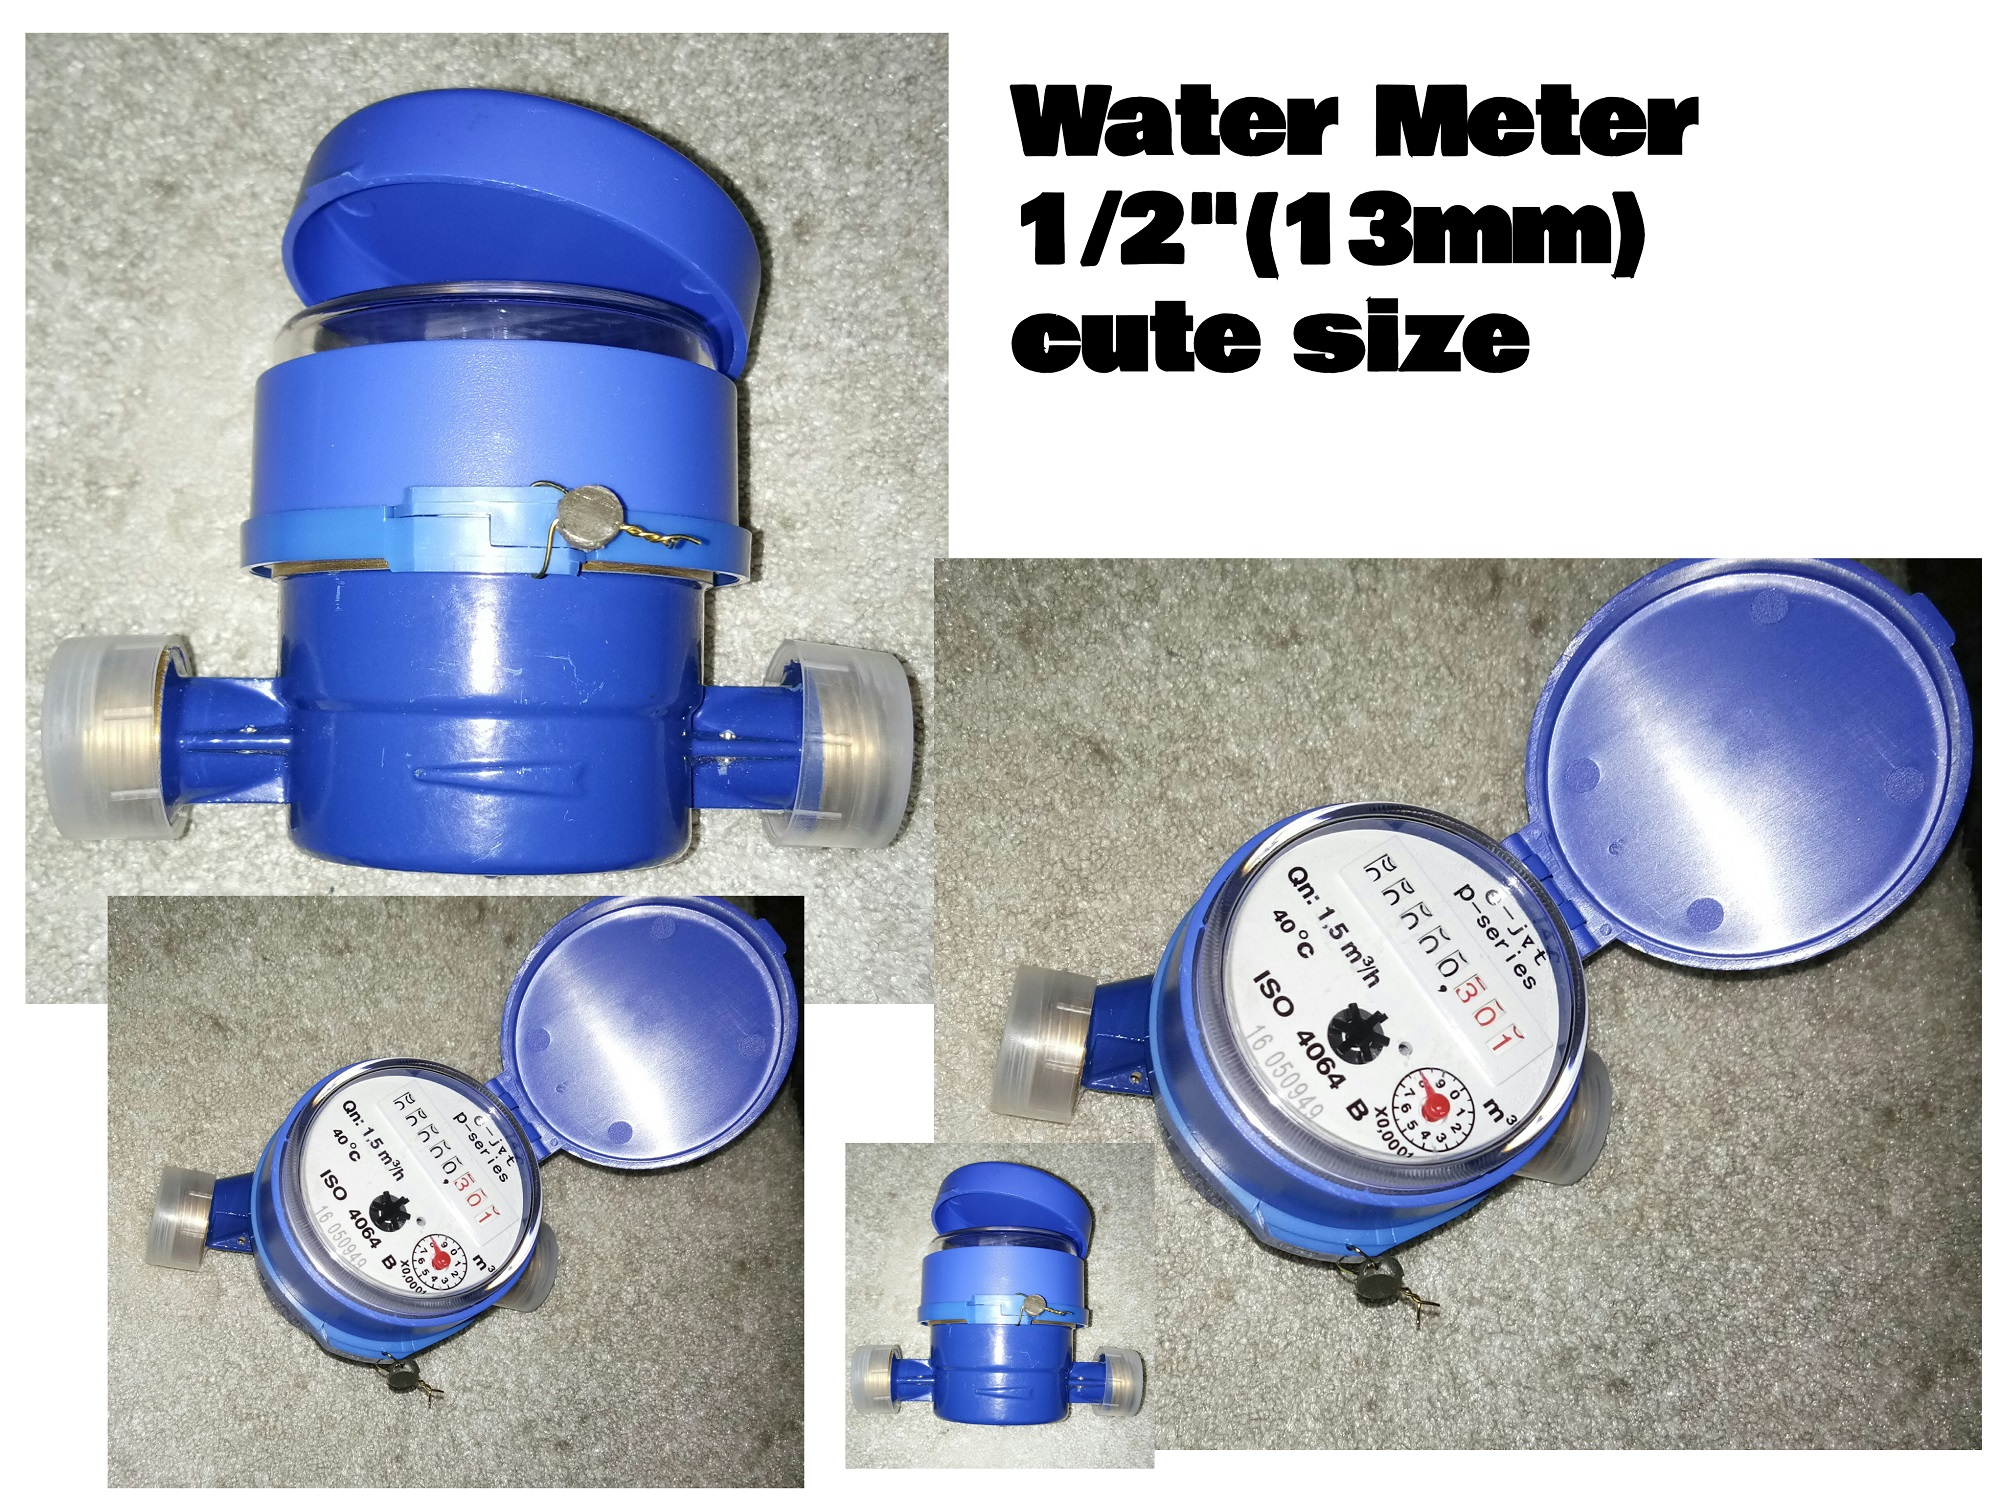 WATER SUB METER E-jet Water Meter Heavy Duty Brass body cute size 13mm 1/2